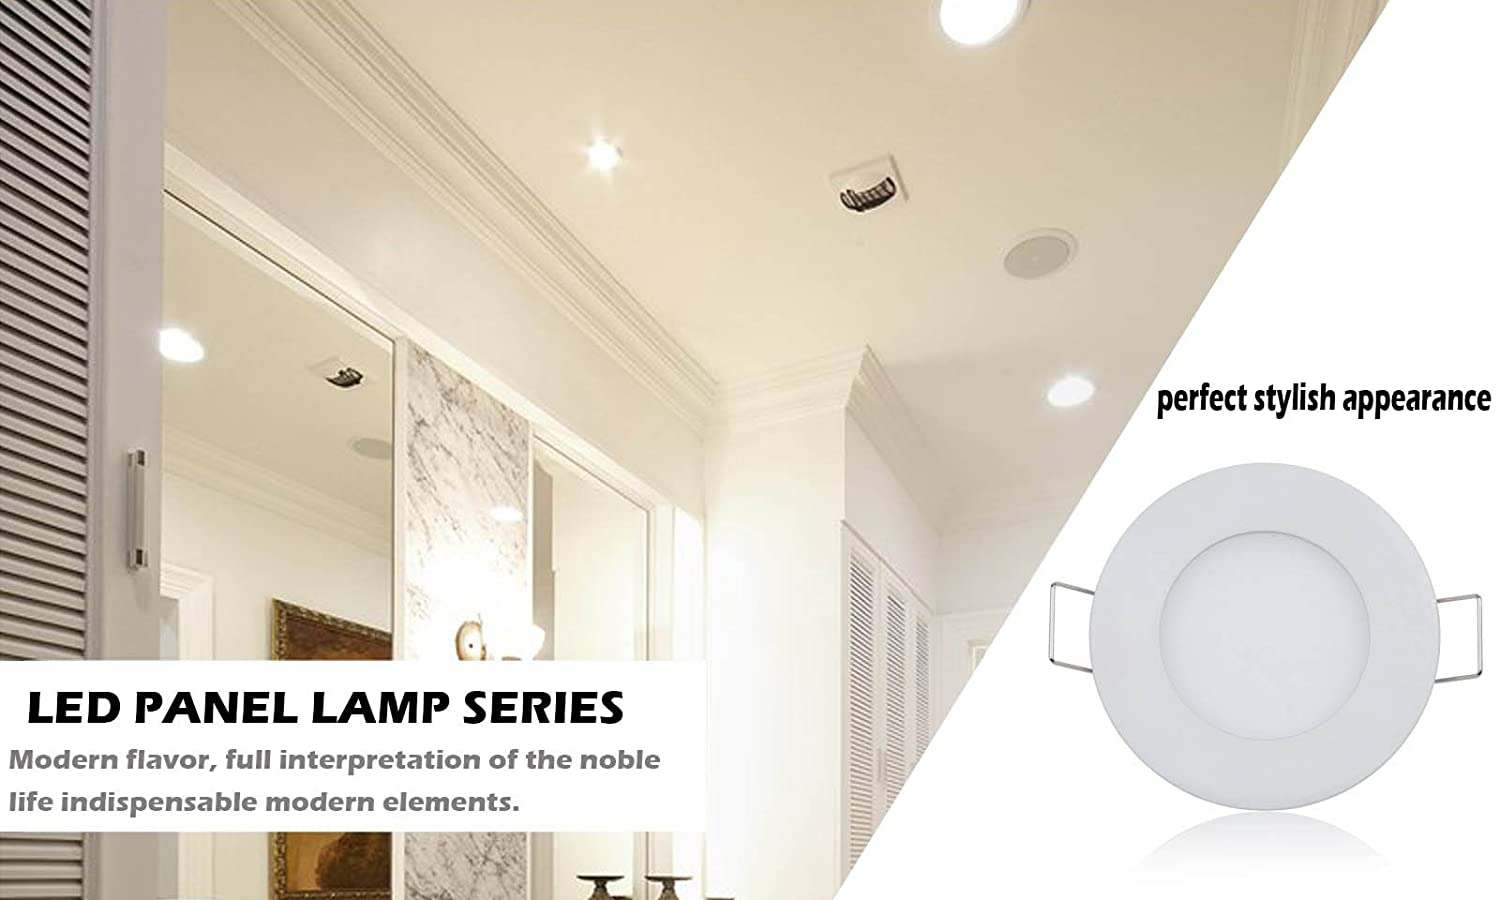 Lemonbest dimmable 12w led panel light round recessed ceiling lemonbest dimmable 12w led panel light round recessed ceiling downlight with led driver warm white amazon home kitchen aloadofball Images